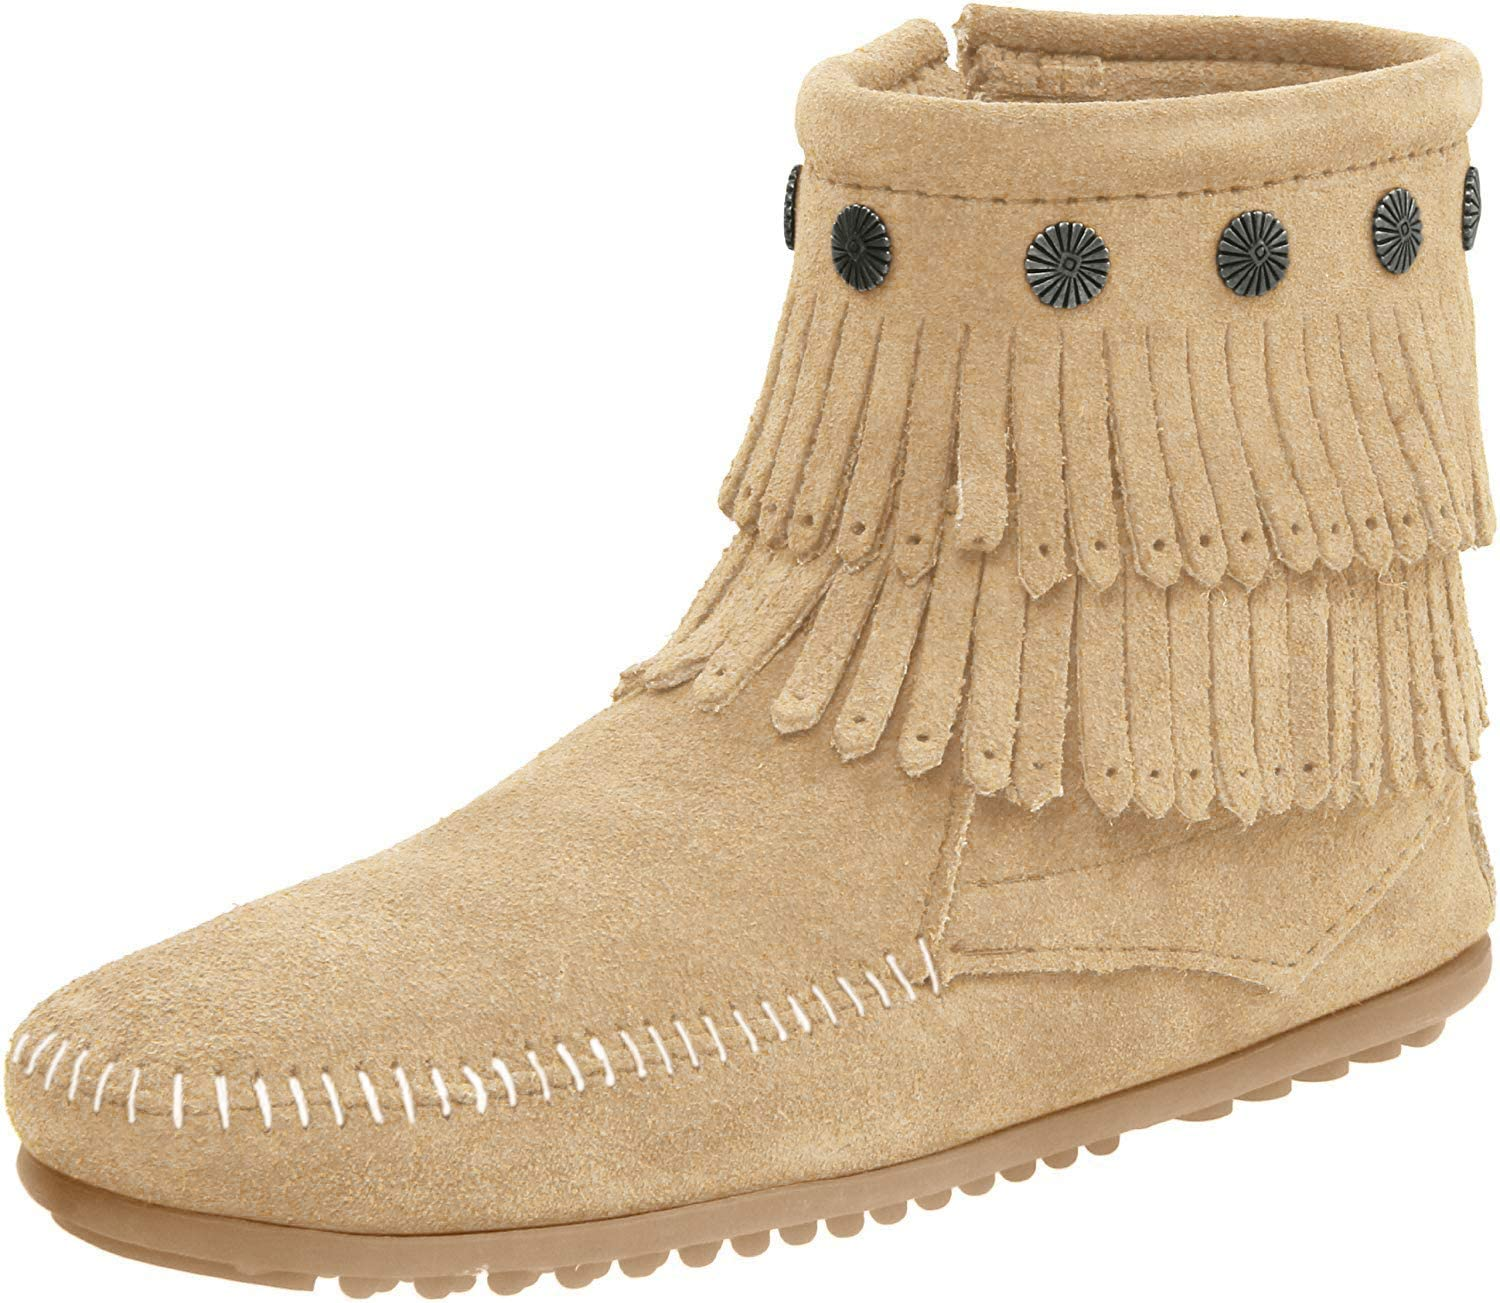 Women's Minnetonka Double Fringe Side Zip Boot in Stone